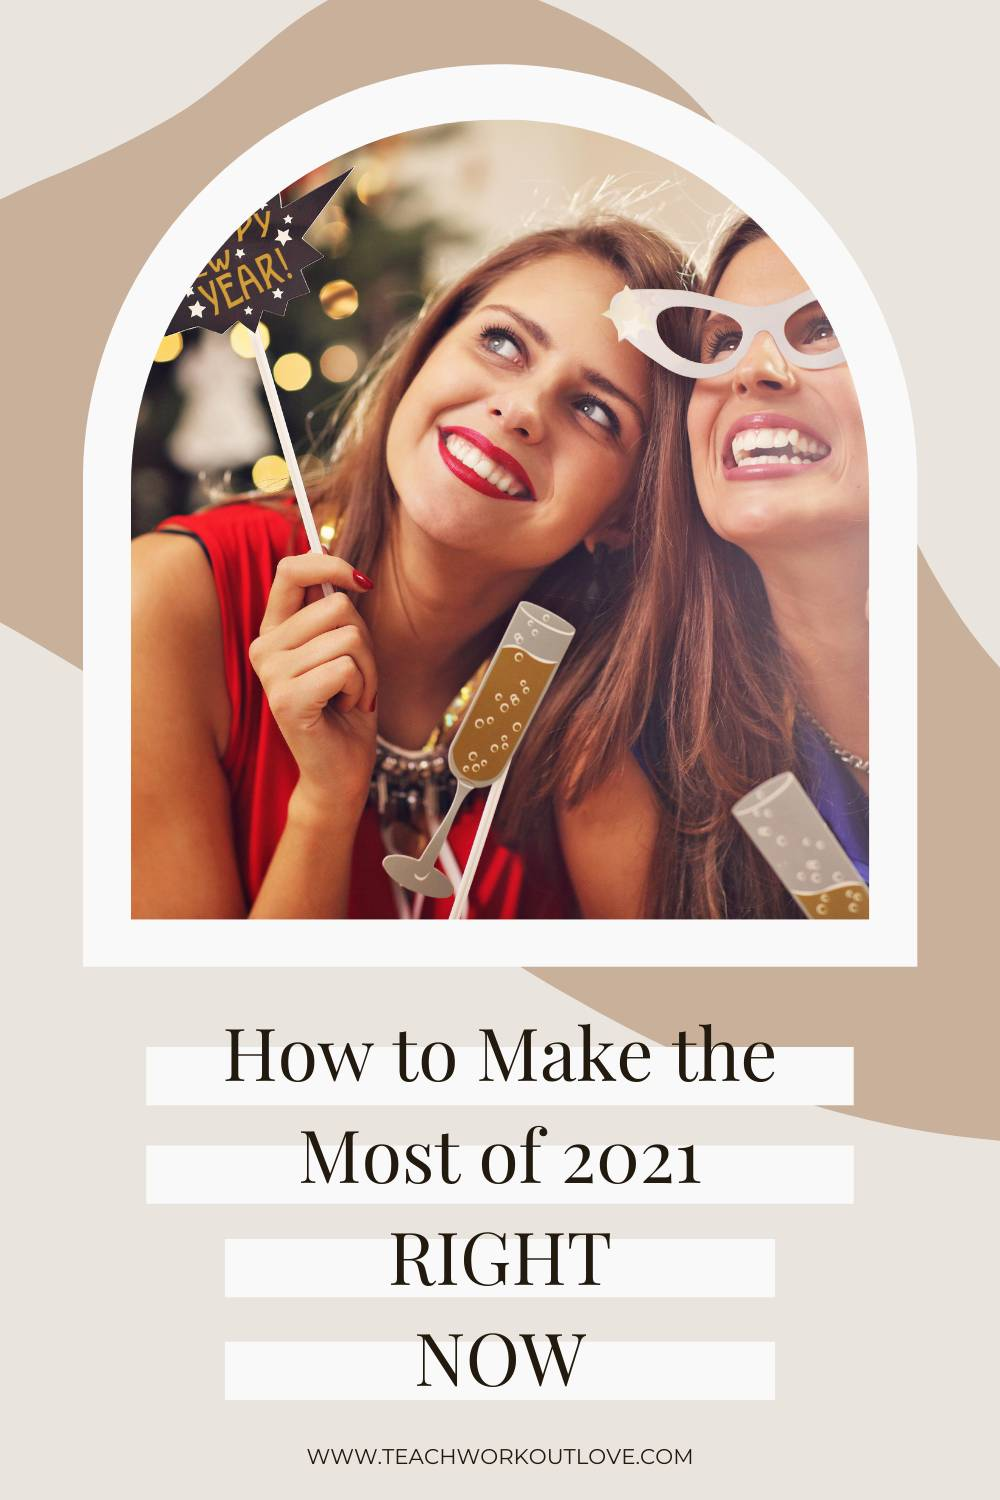 With 2020 in the books, we need to make the absolute most of 2021. Not sure how to do that? We have some tips for you!